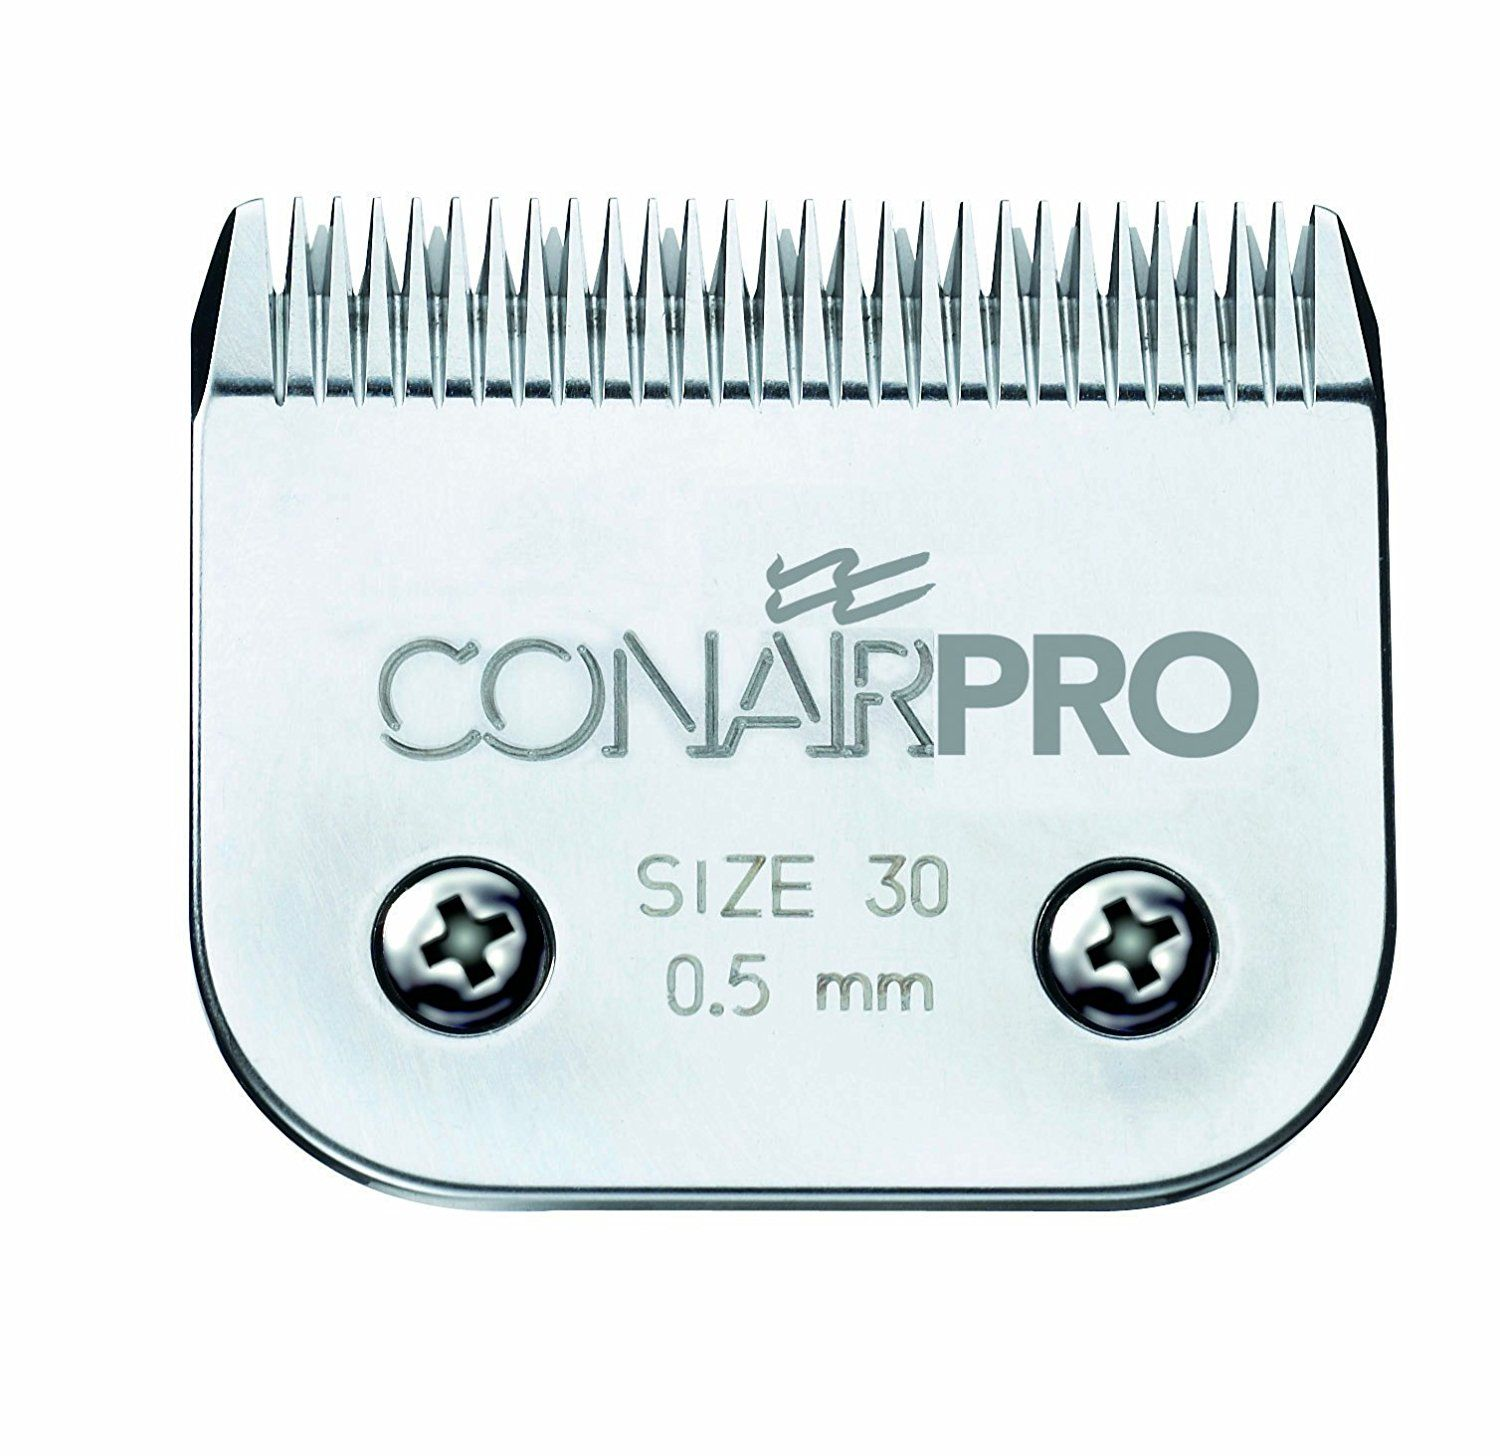 Conair Pro Pet Clipper Size 30 Ceramic Replacement Blade 0 5mm Insider S Special Review You Can T Miss R Cat Grooming Dog Training Pads Replacement Blades